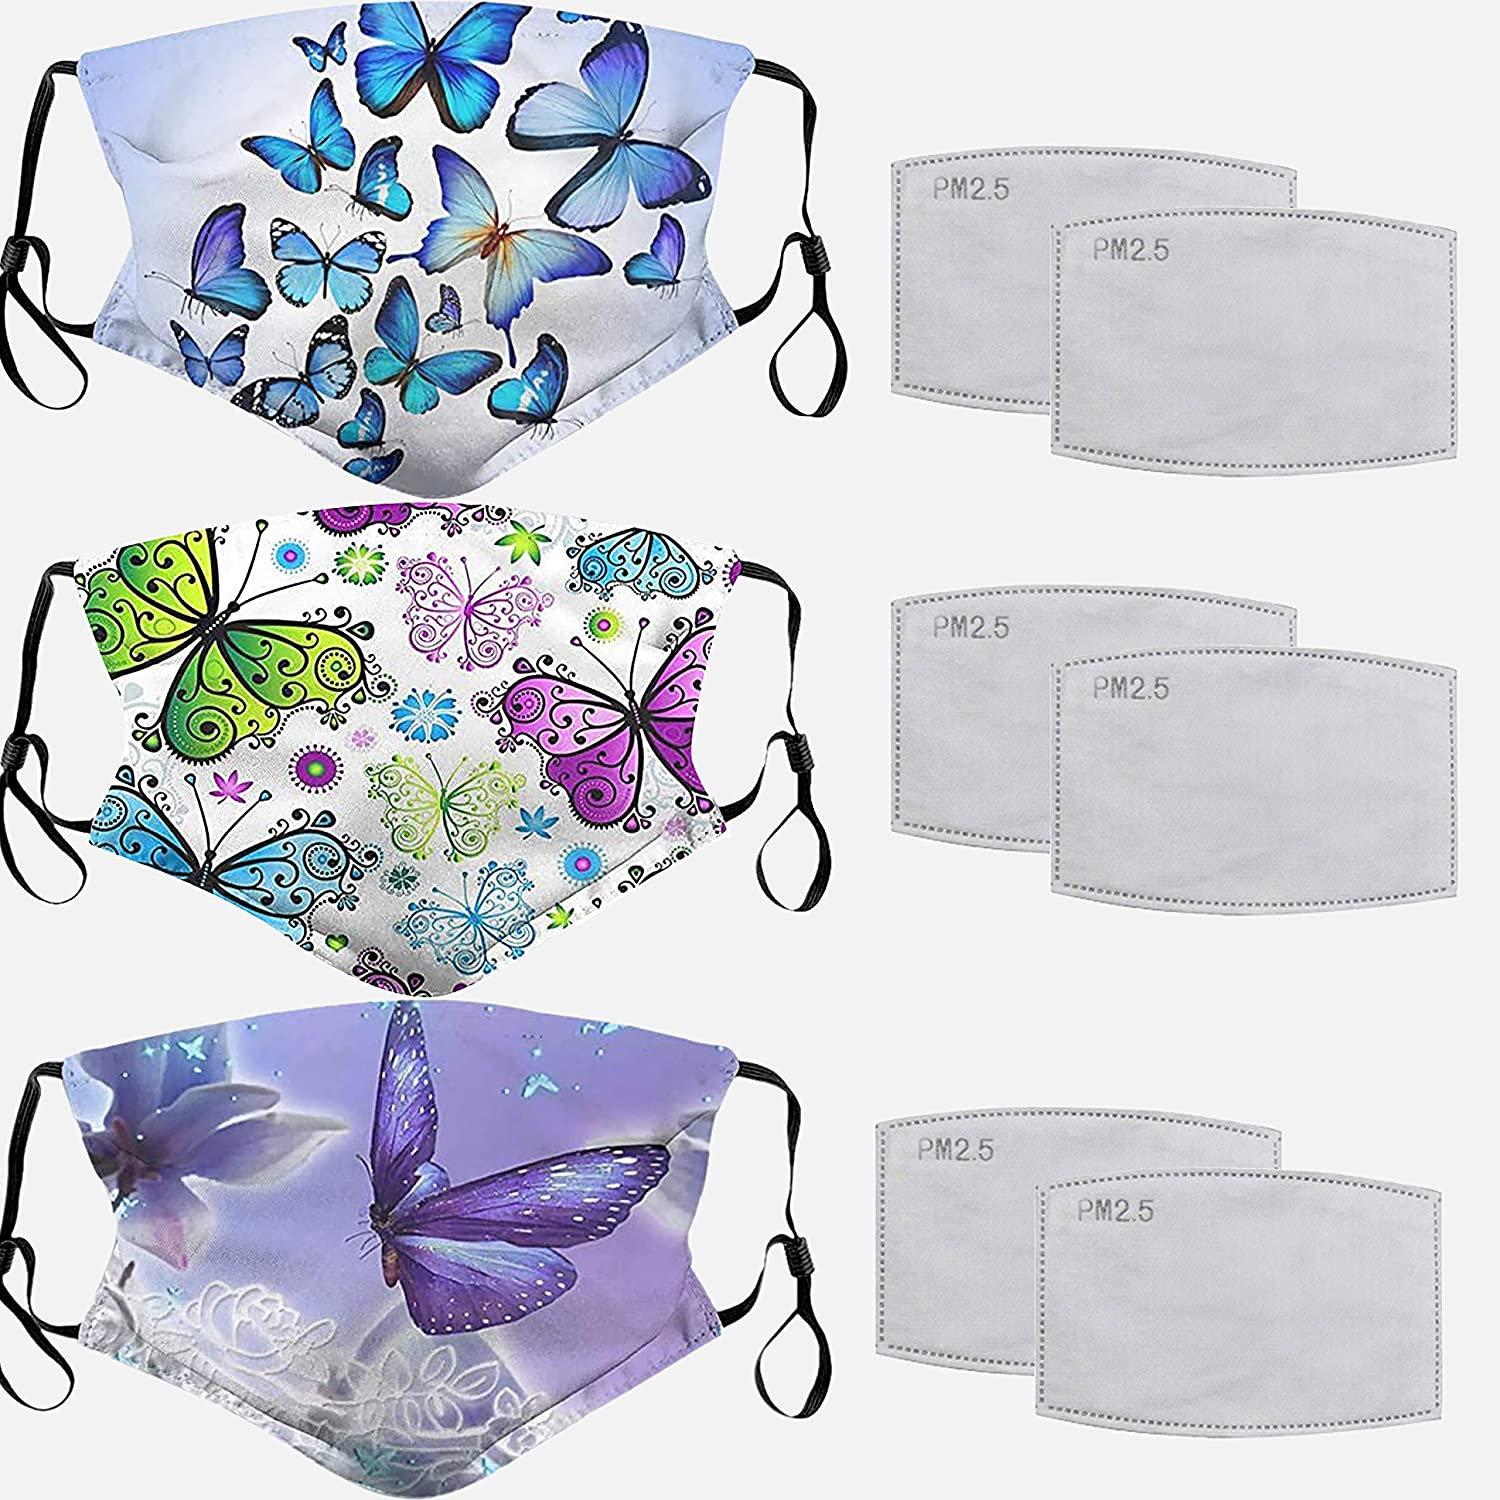 3 Pcs Butterfly Face_Masks with Filter for Adults Reusable Face_Masks Breathable Face Covering for Women Washable Anti-dust Face Mouth Protection with Adjustable Earloops Multi-W